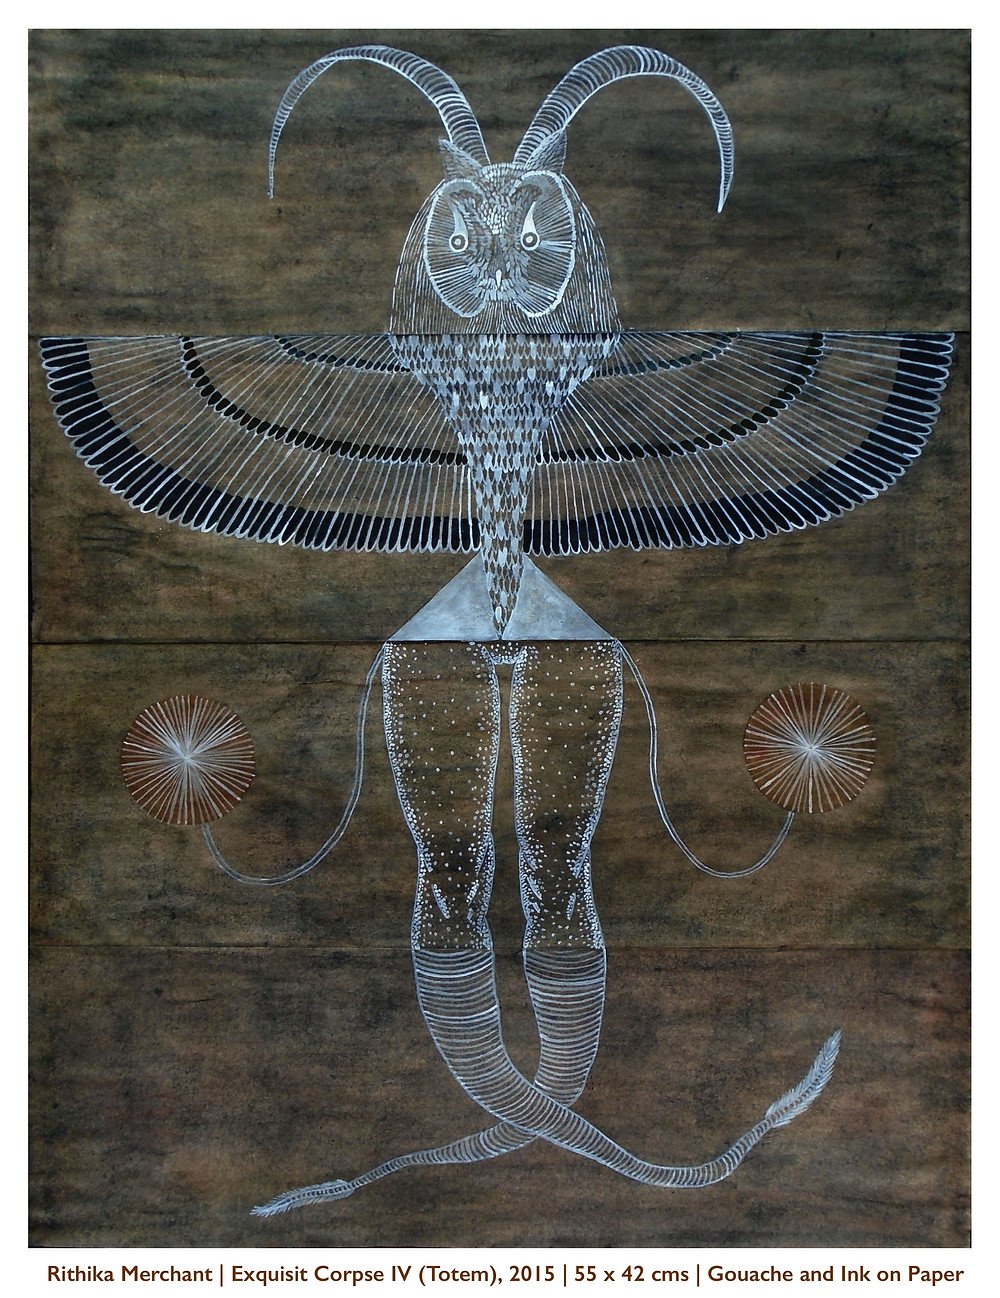 Exquisite Corpse IV (Totem) - Rithika Merchant